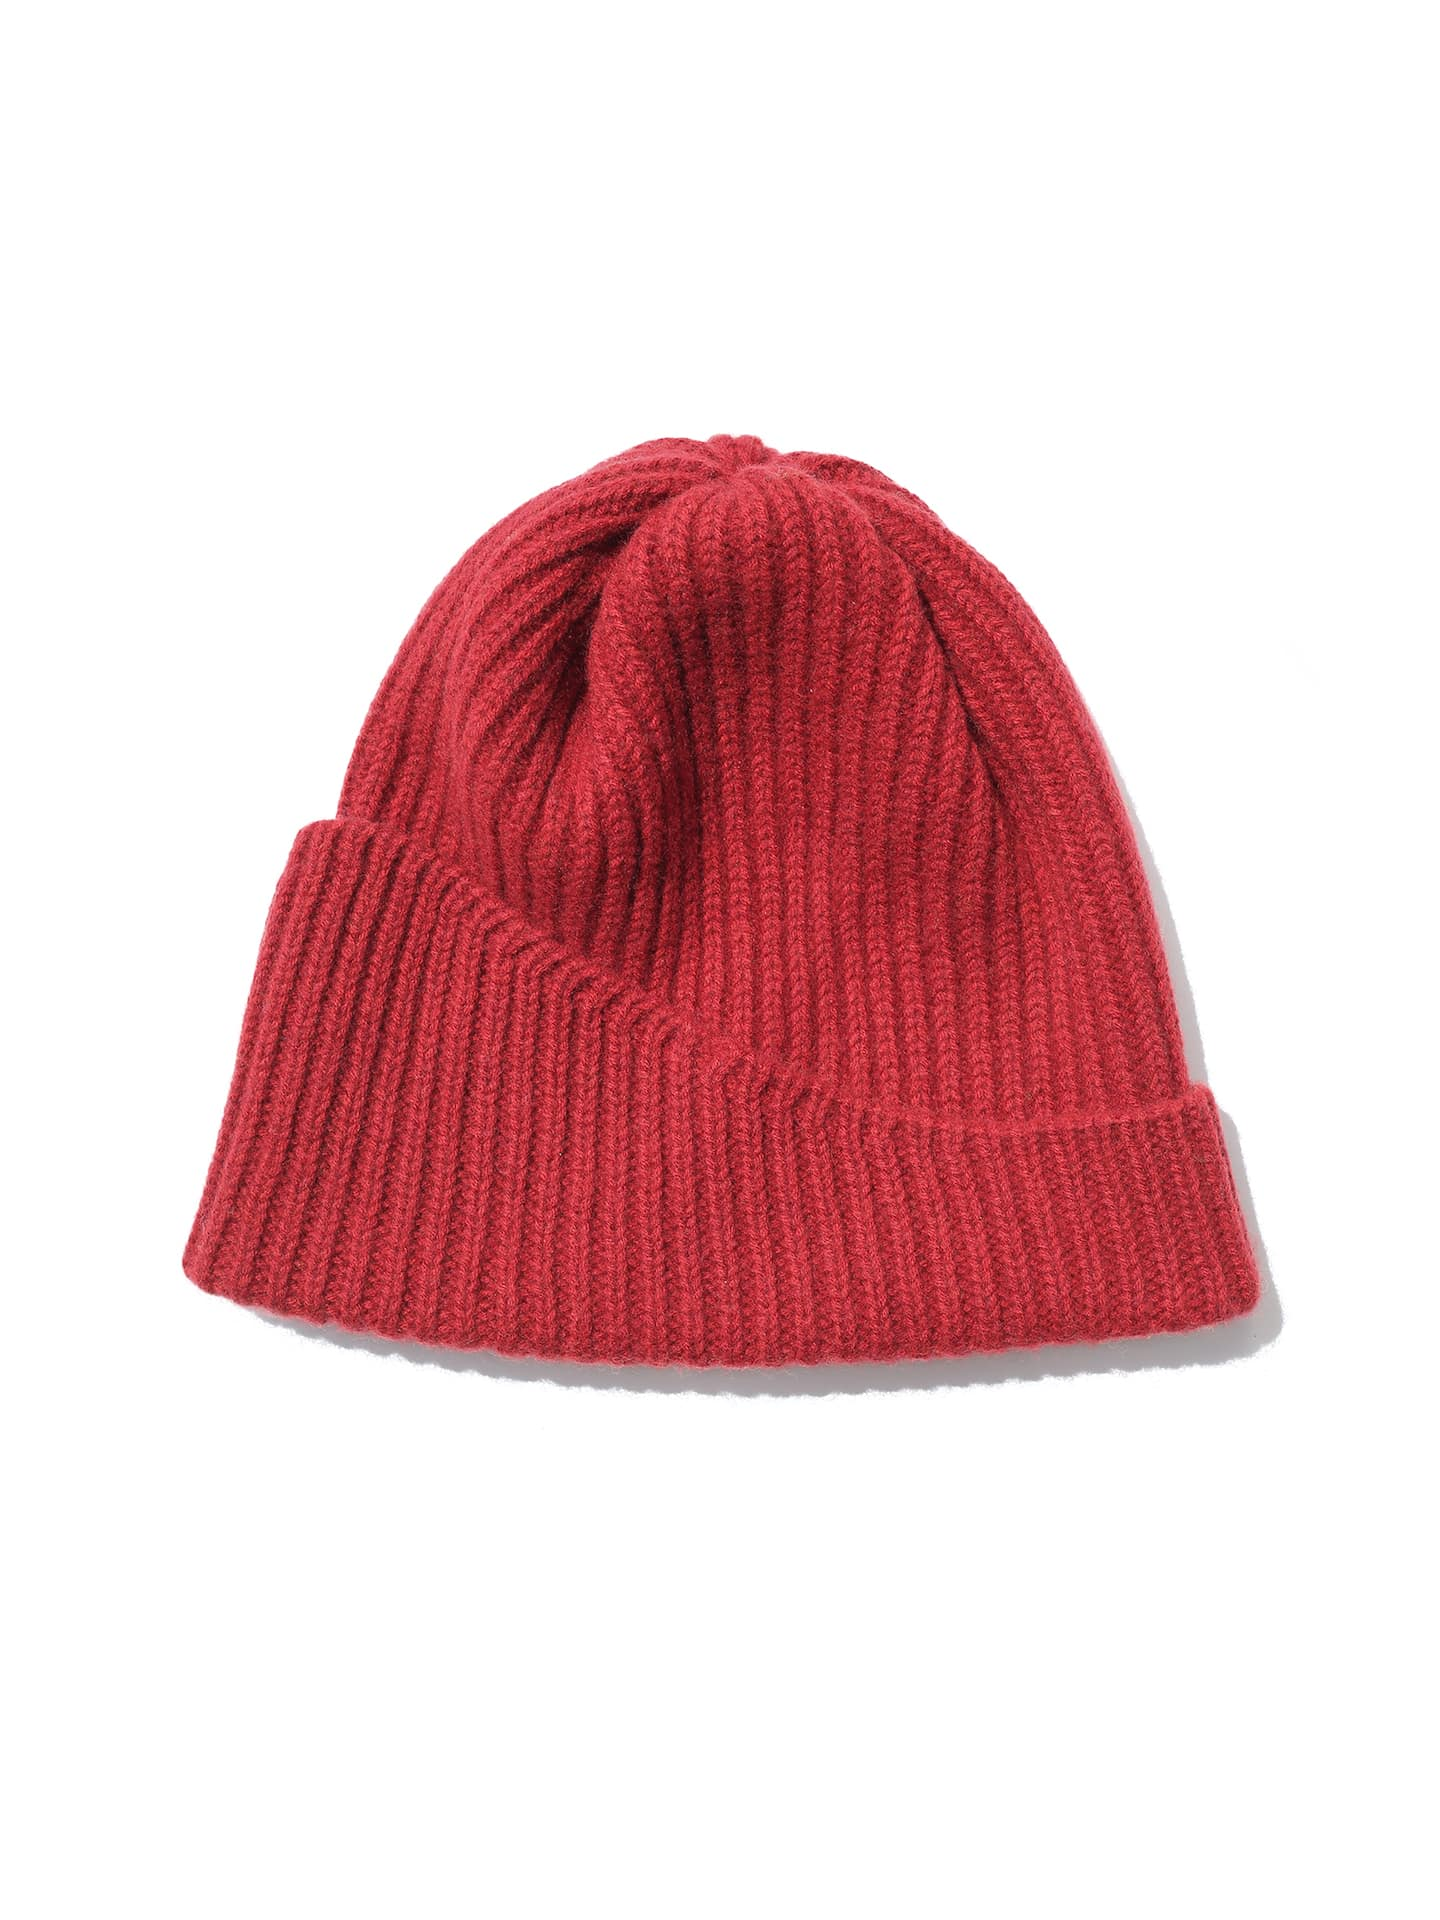 Reshaped Beanie Lambswool - Terracotta